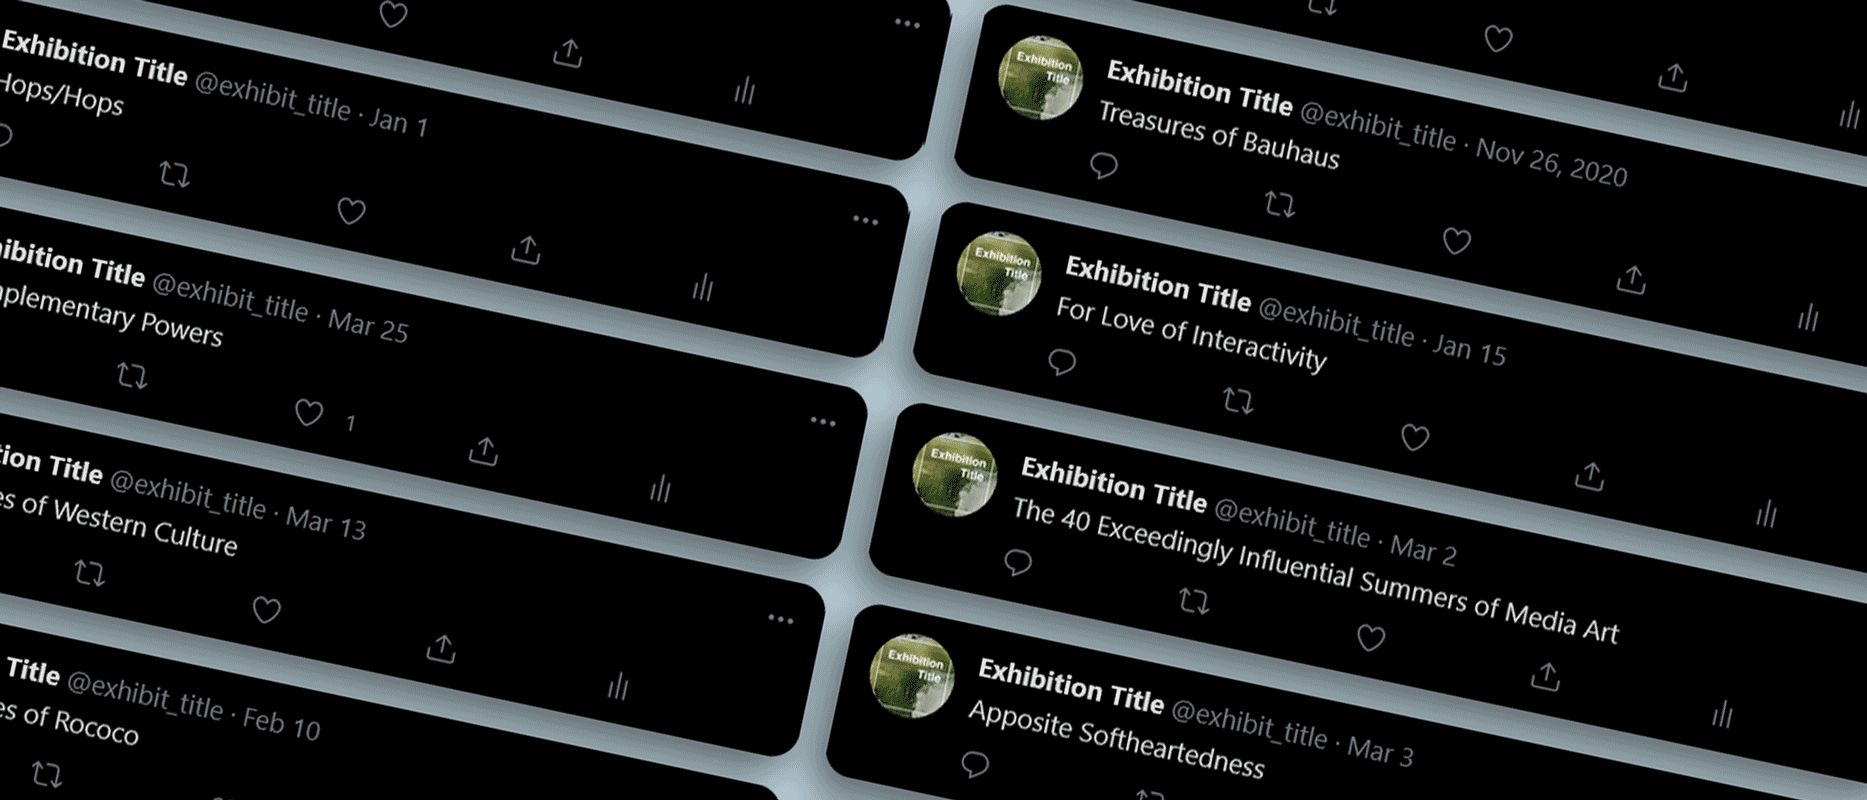 Mockup of tweets from the Twitter bot